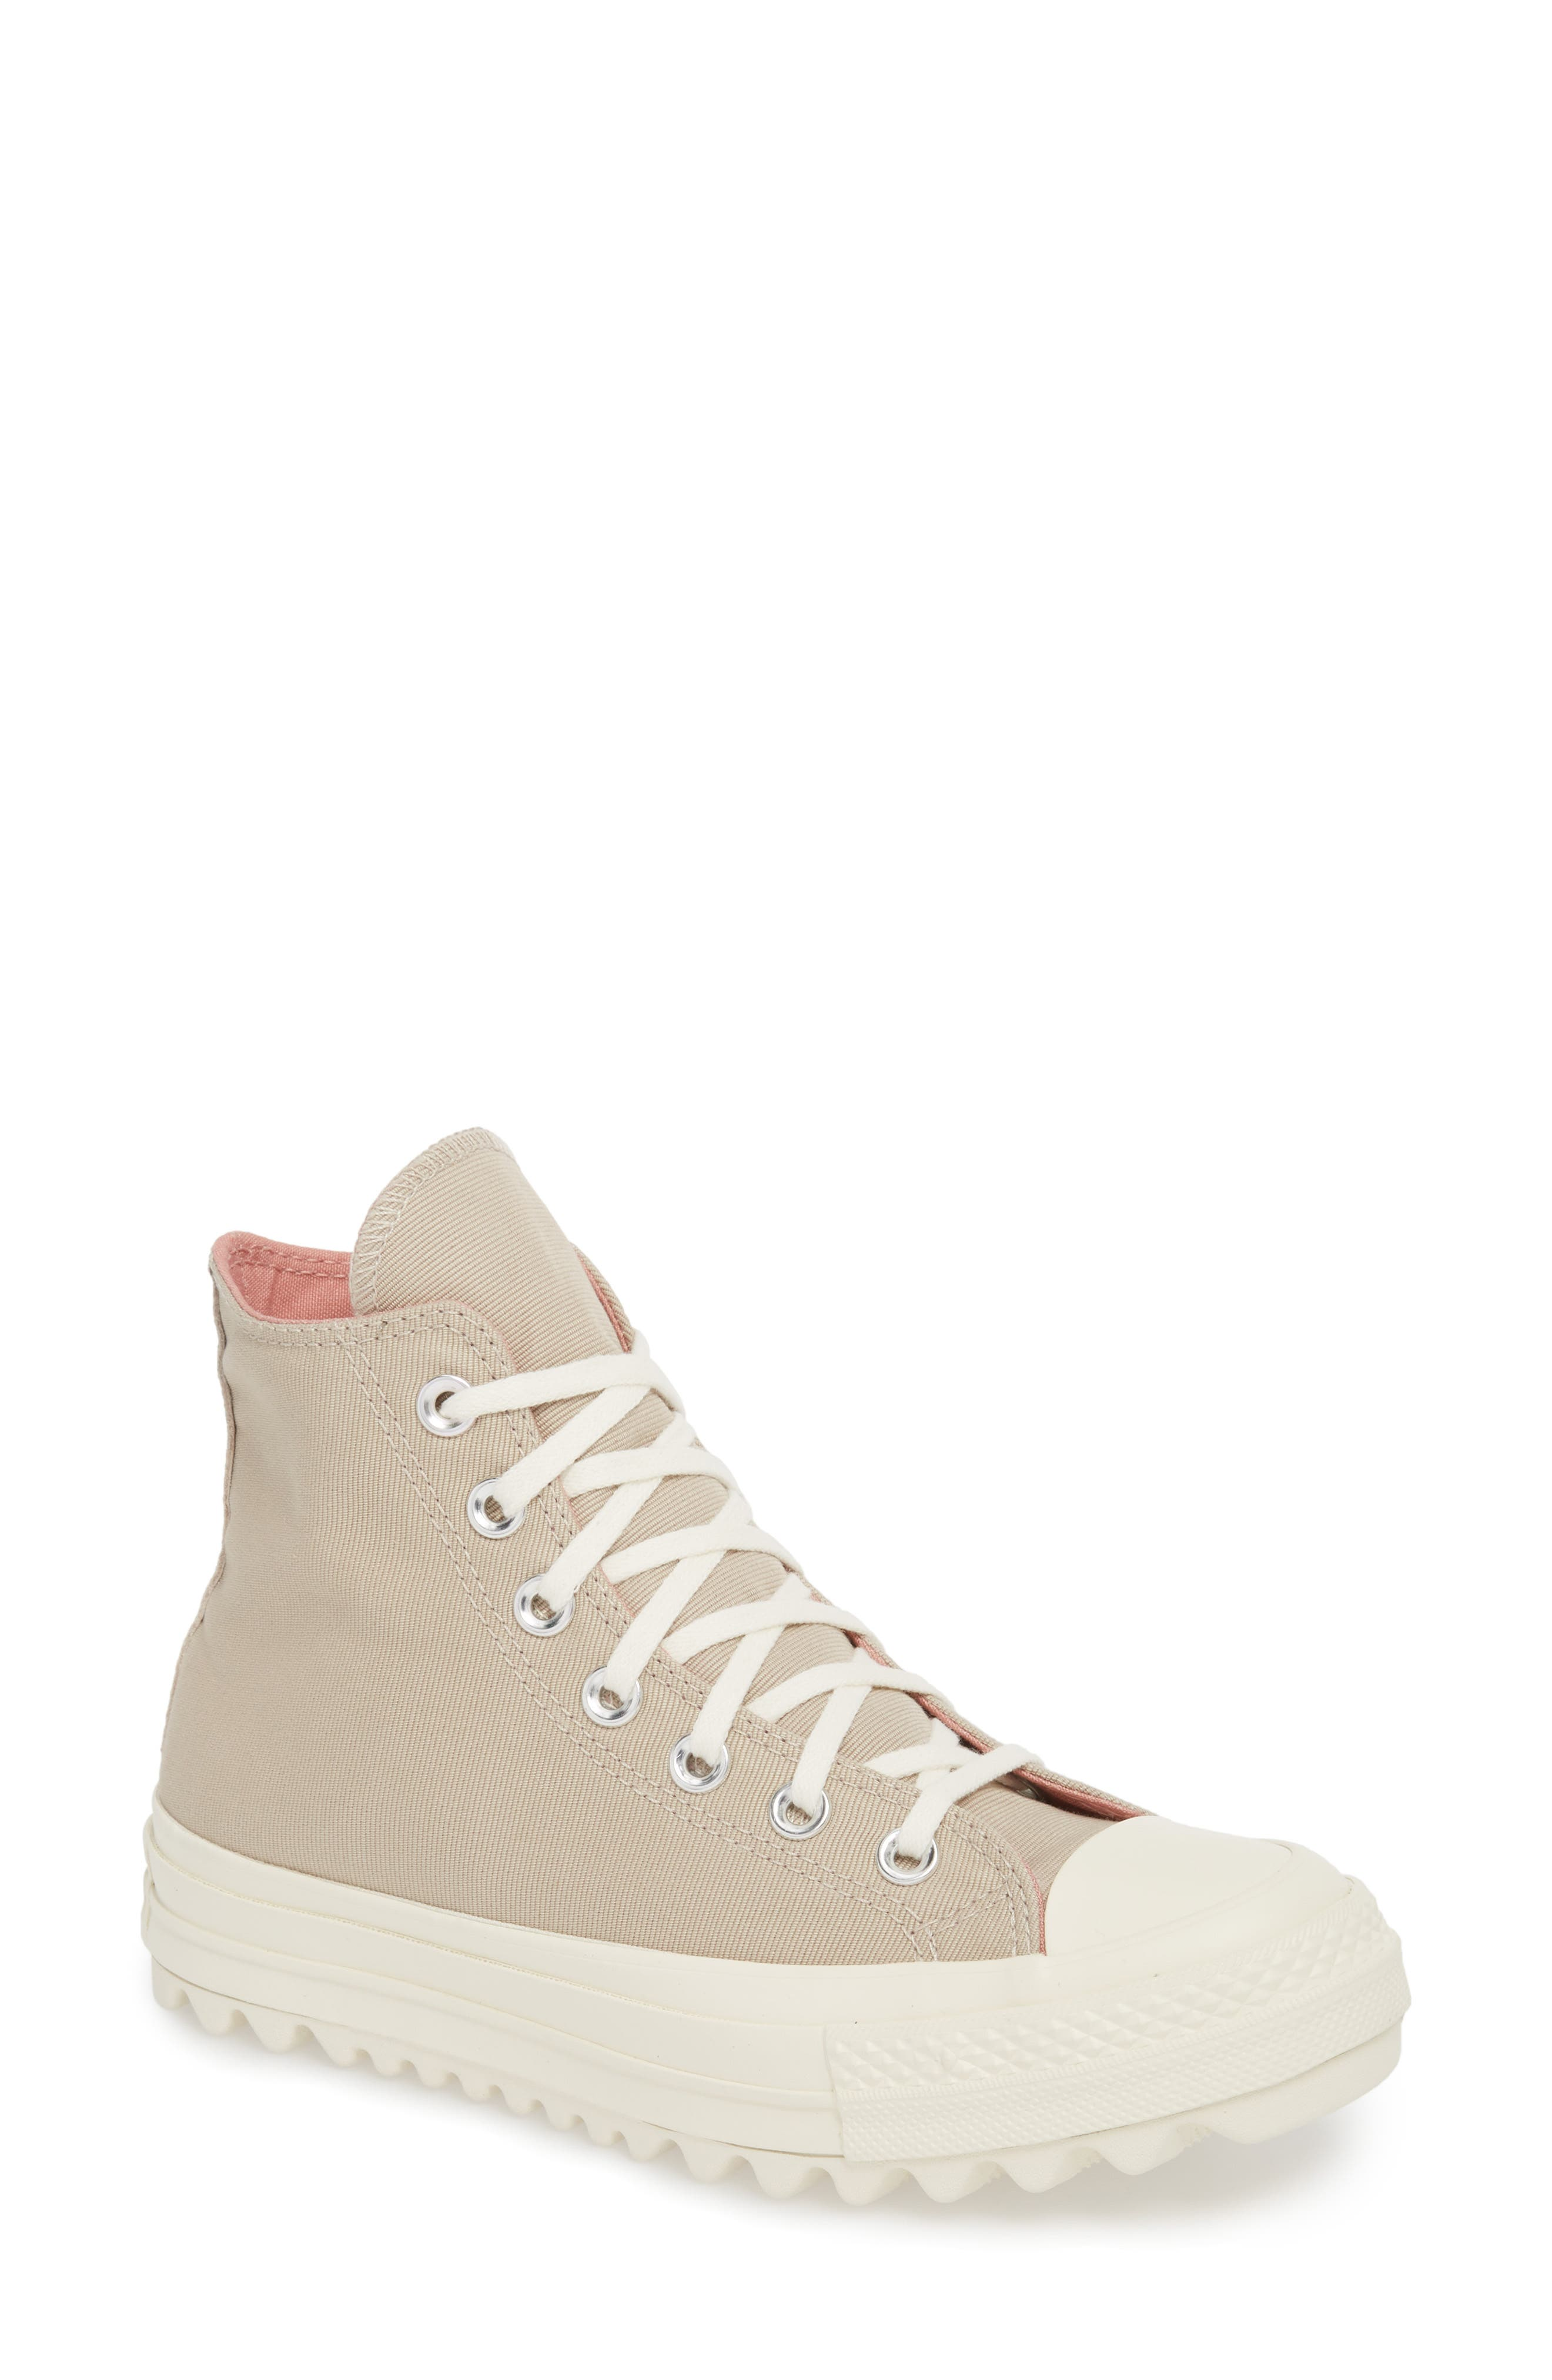 Chuck Taylor<sup>®</sup> All Star<sup>®</sup> Ripple High Top Sneaker,                         Main,                         color, Papyrus Suede